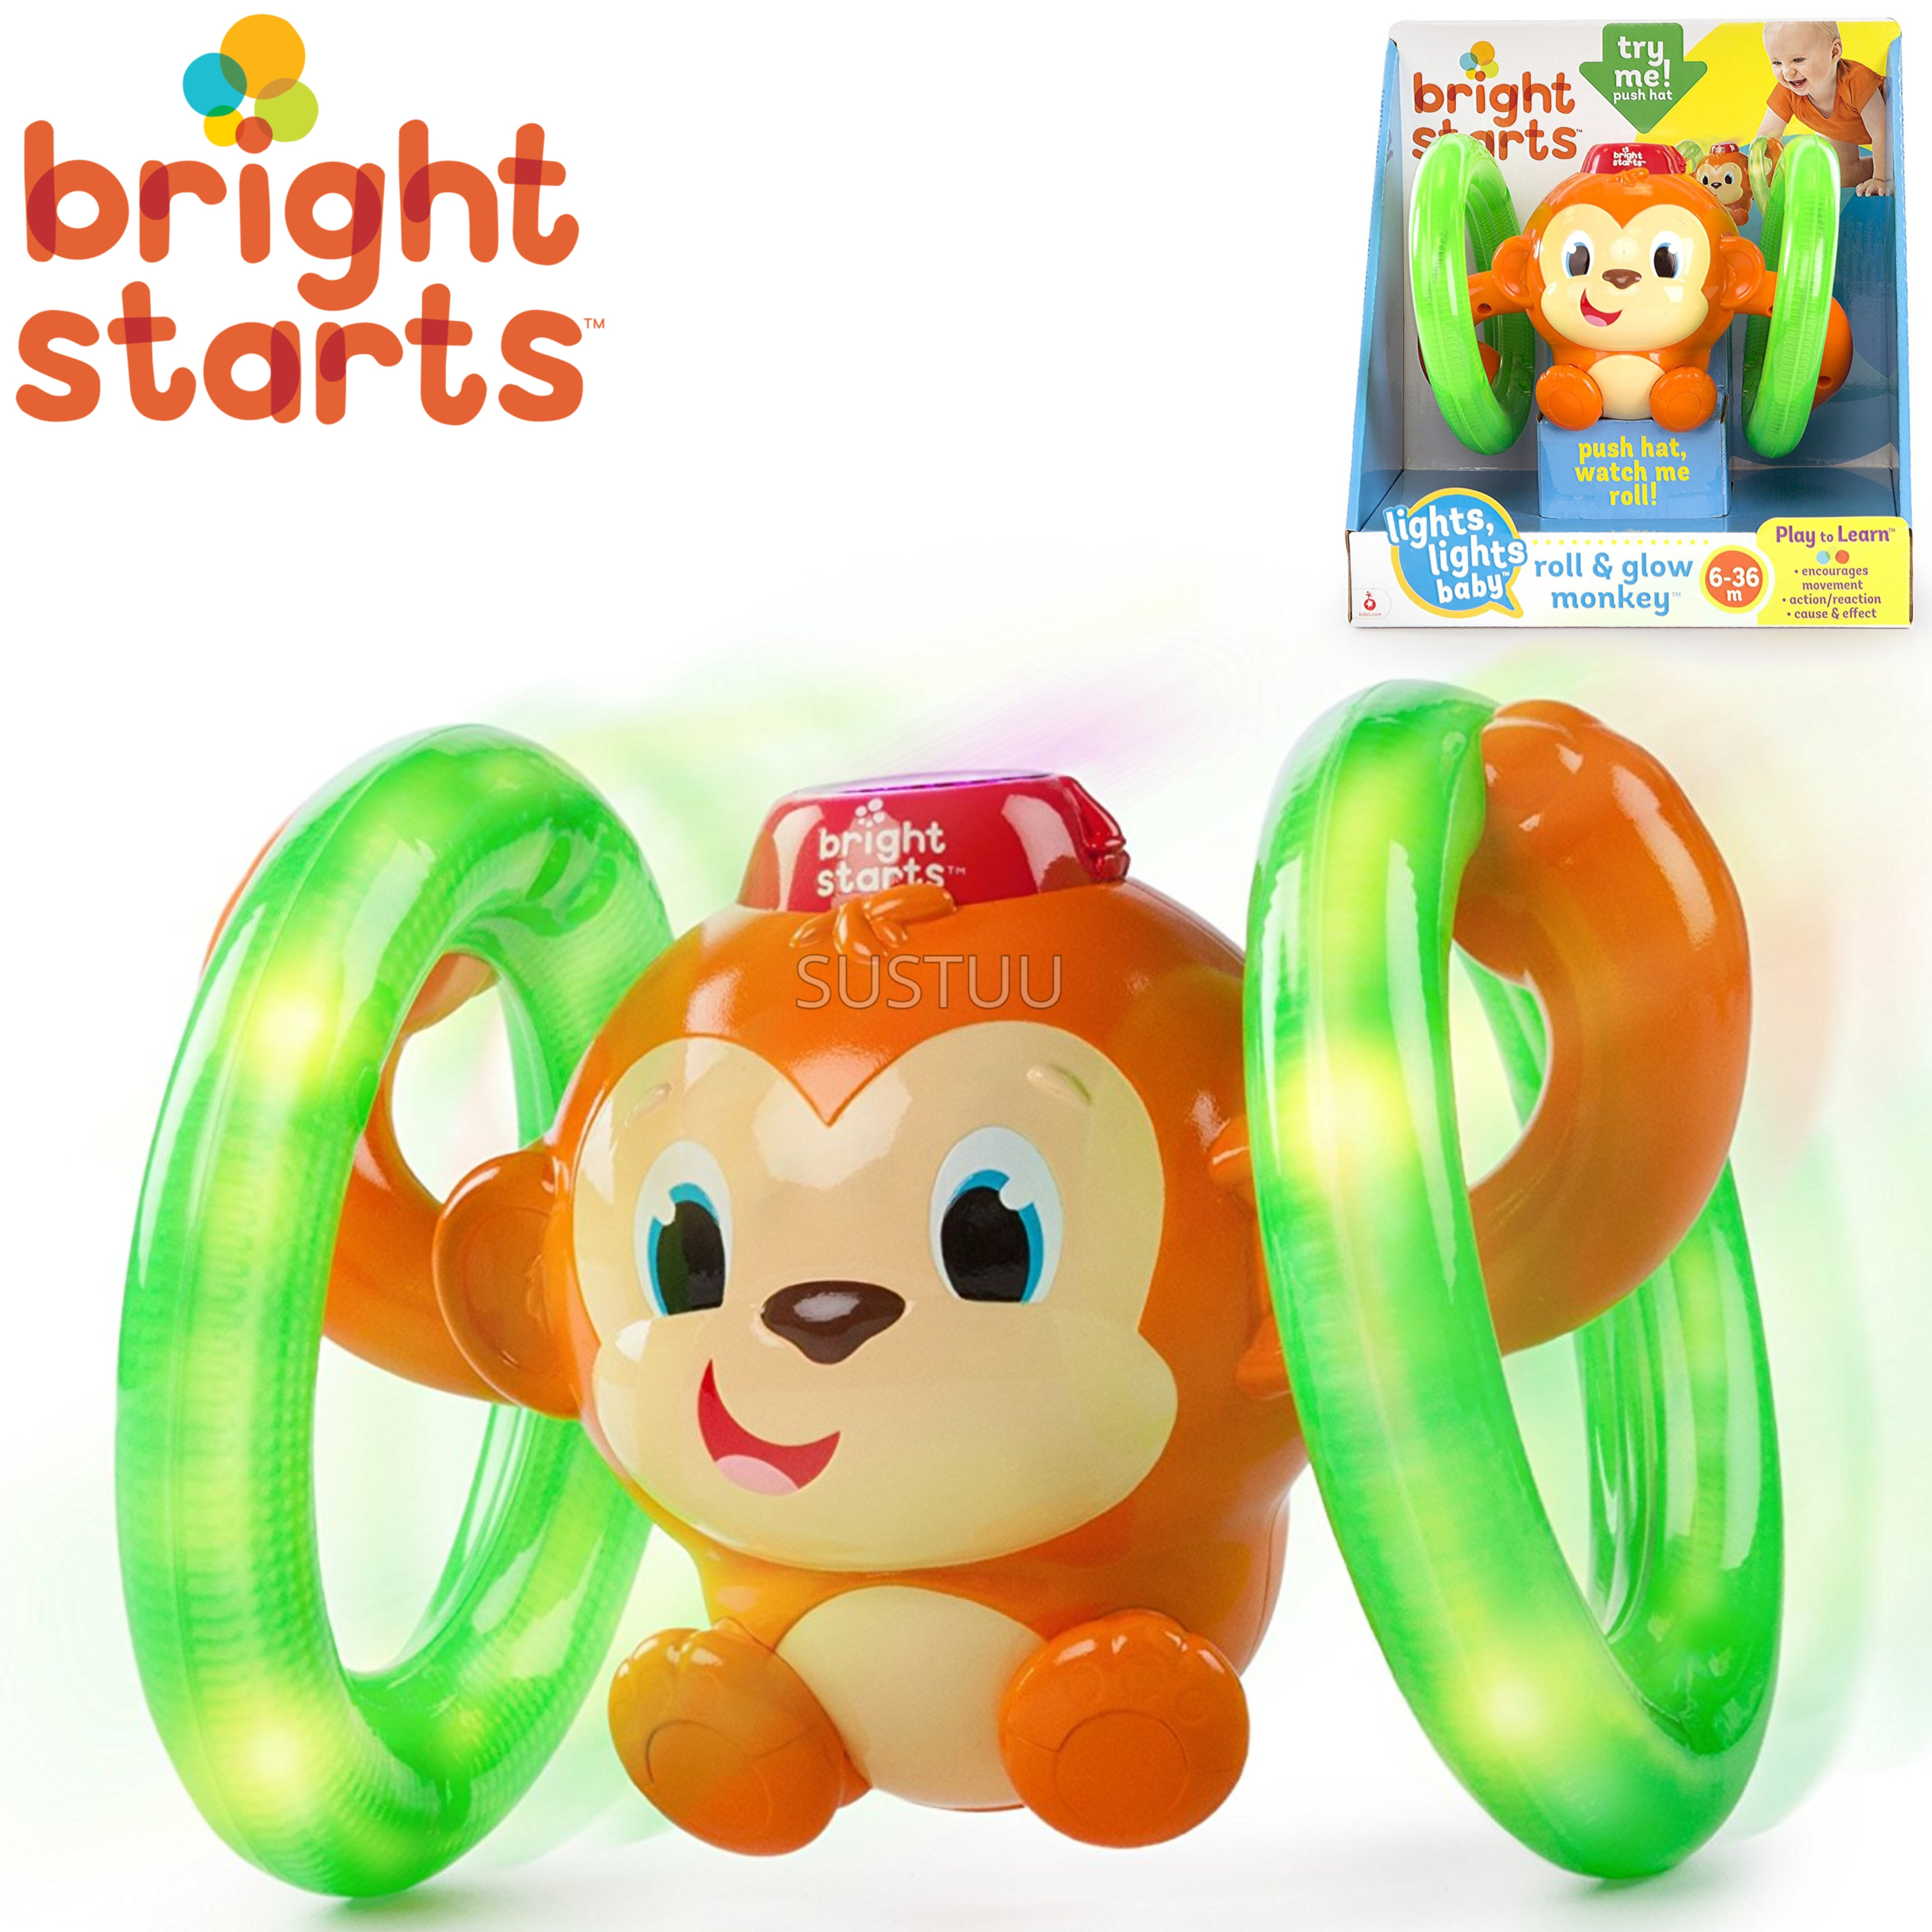 Bright Starts Learn Roll & Glow Monkey | Baby/Kids Activity Toy With Lightup Wheel